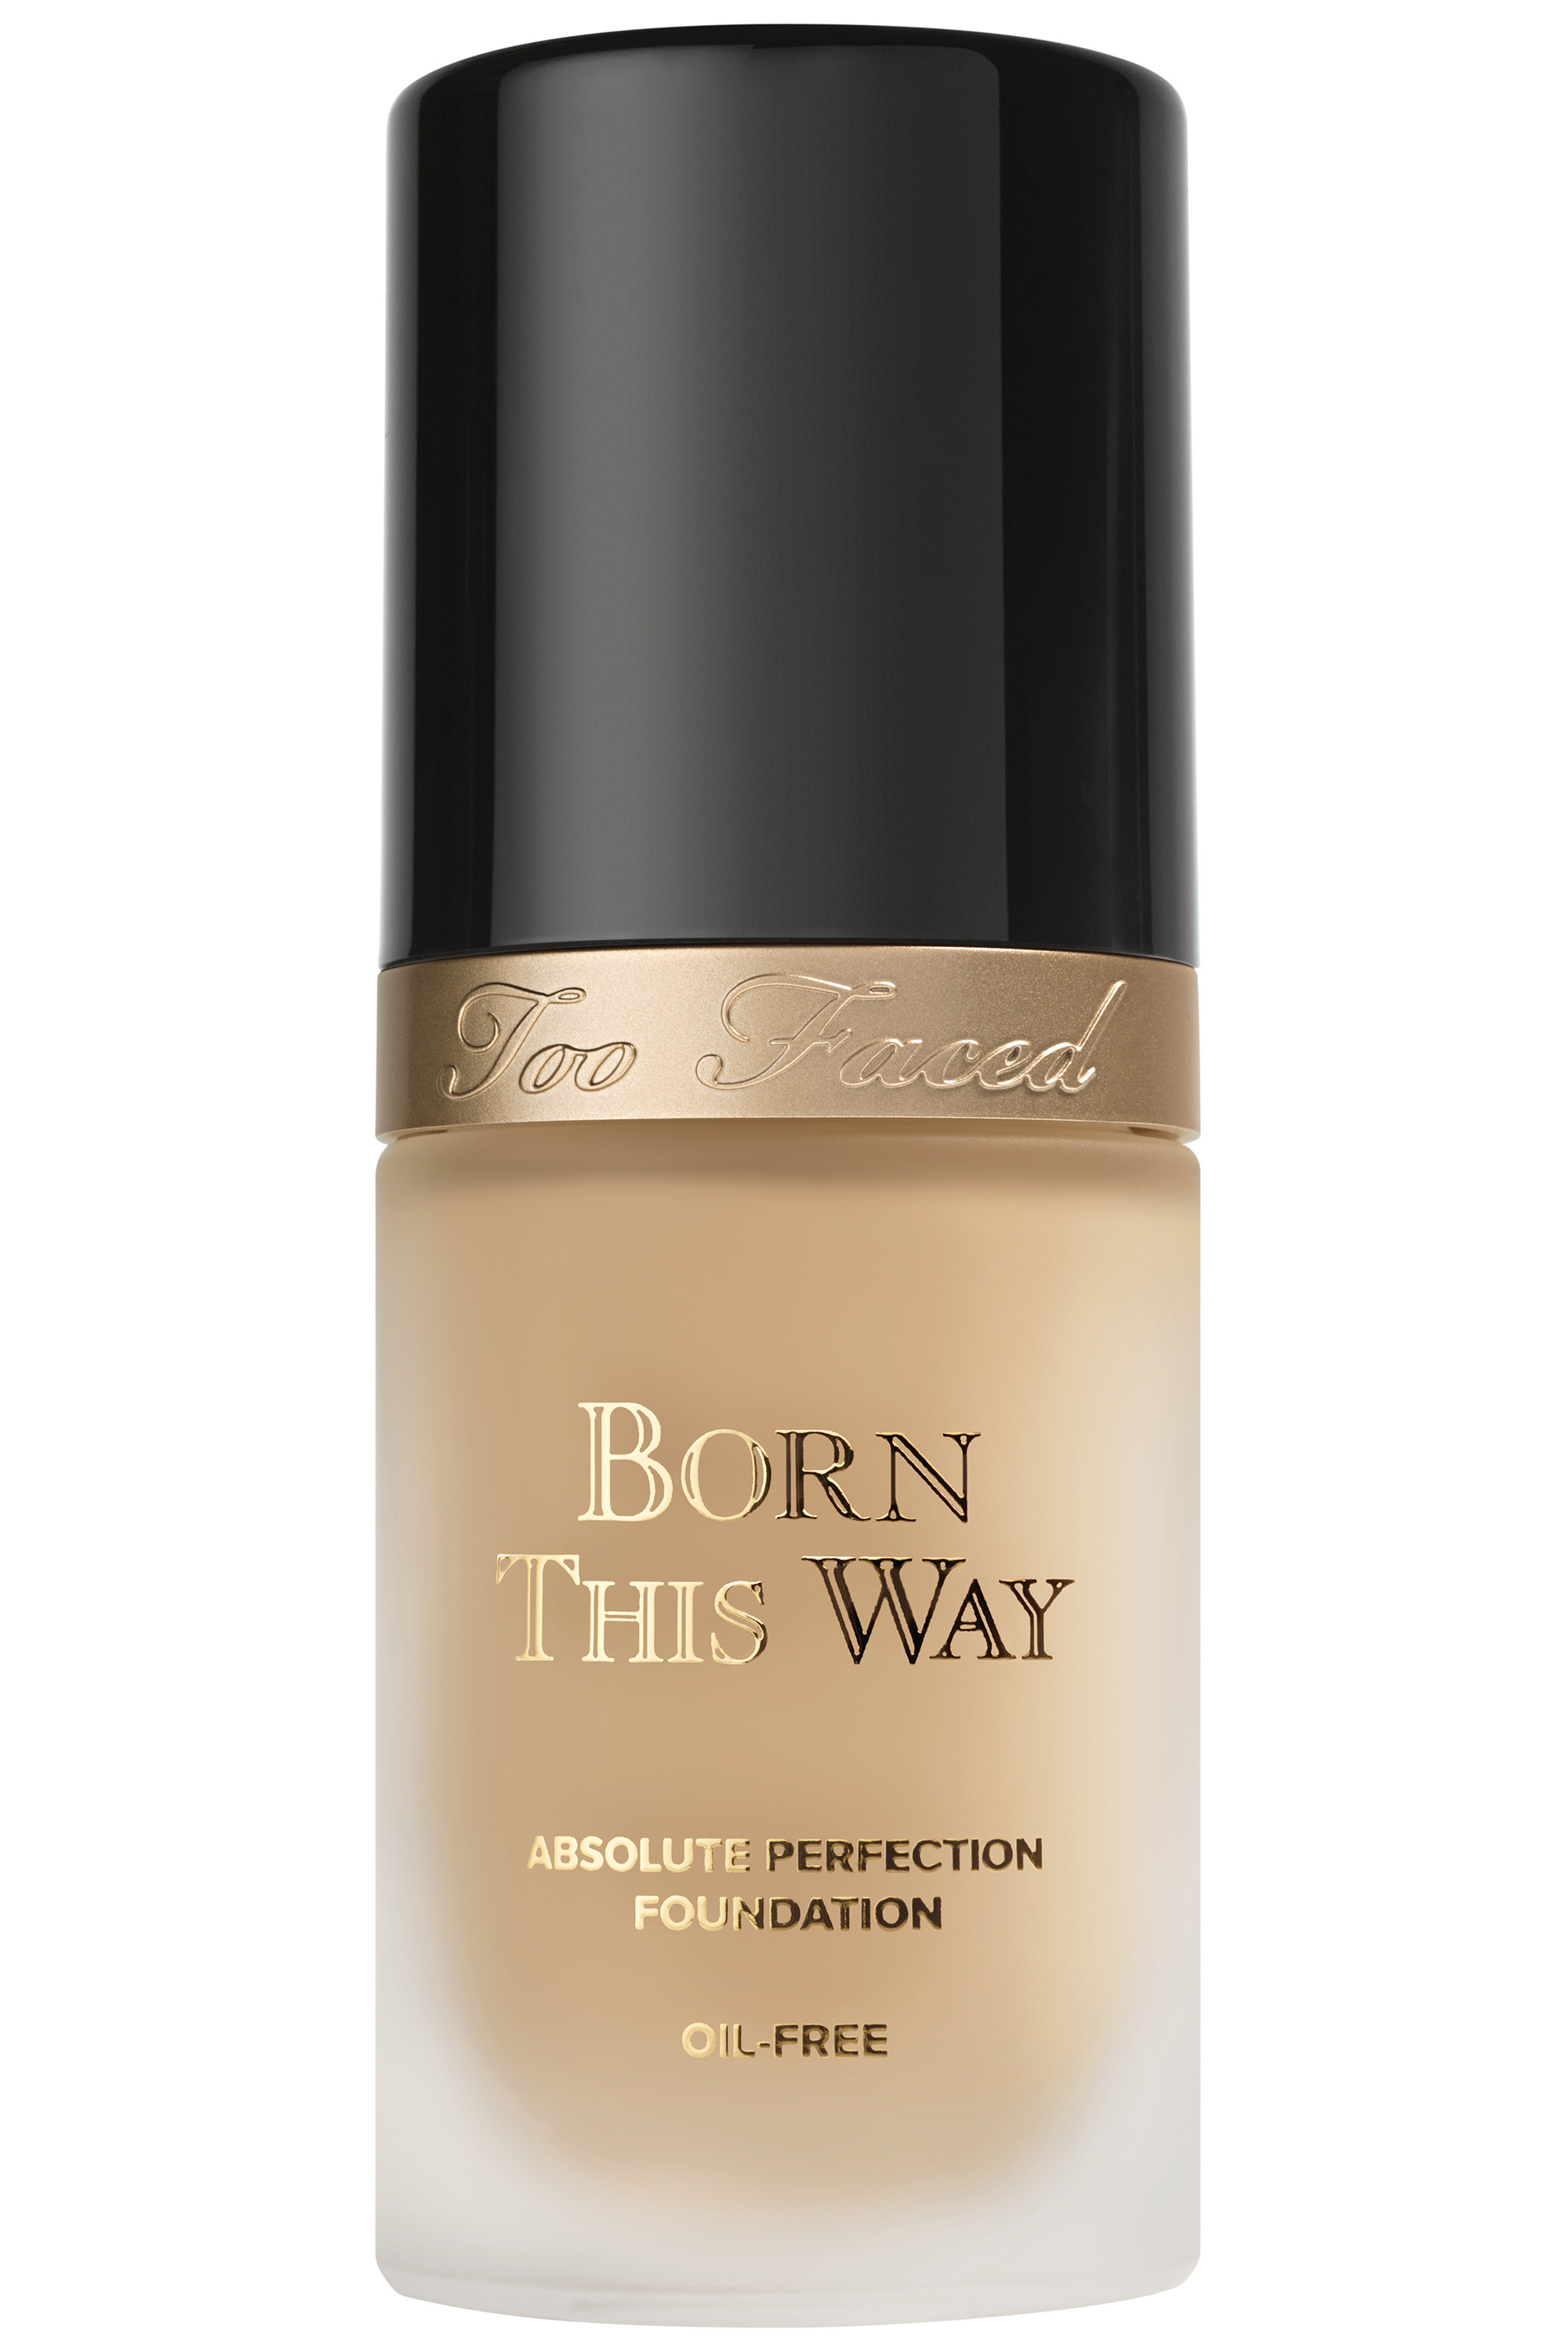 Best Foundation For Oily And Acne-Prone Skin